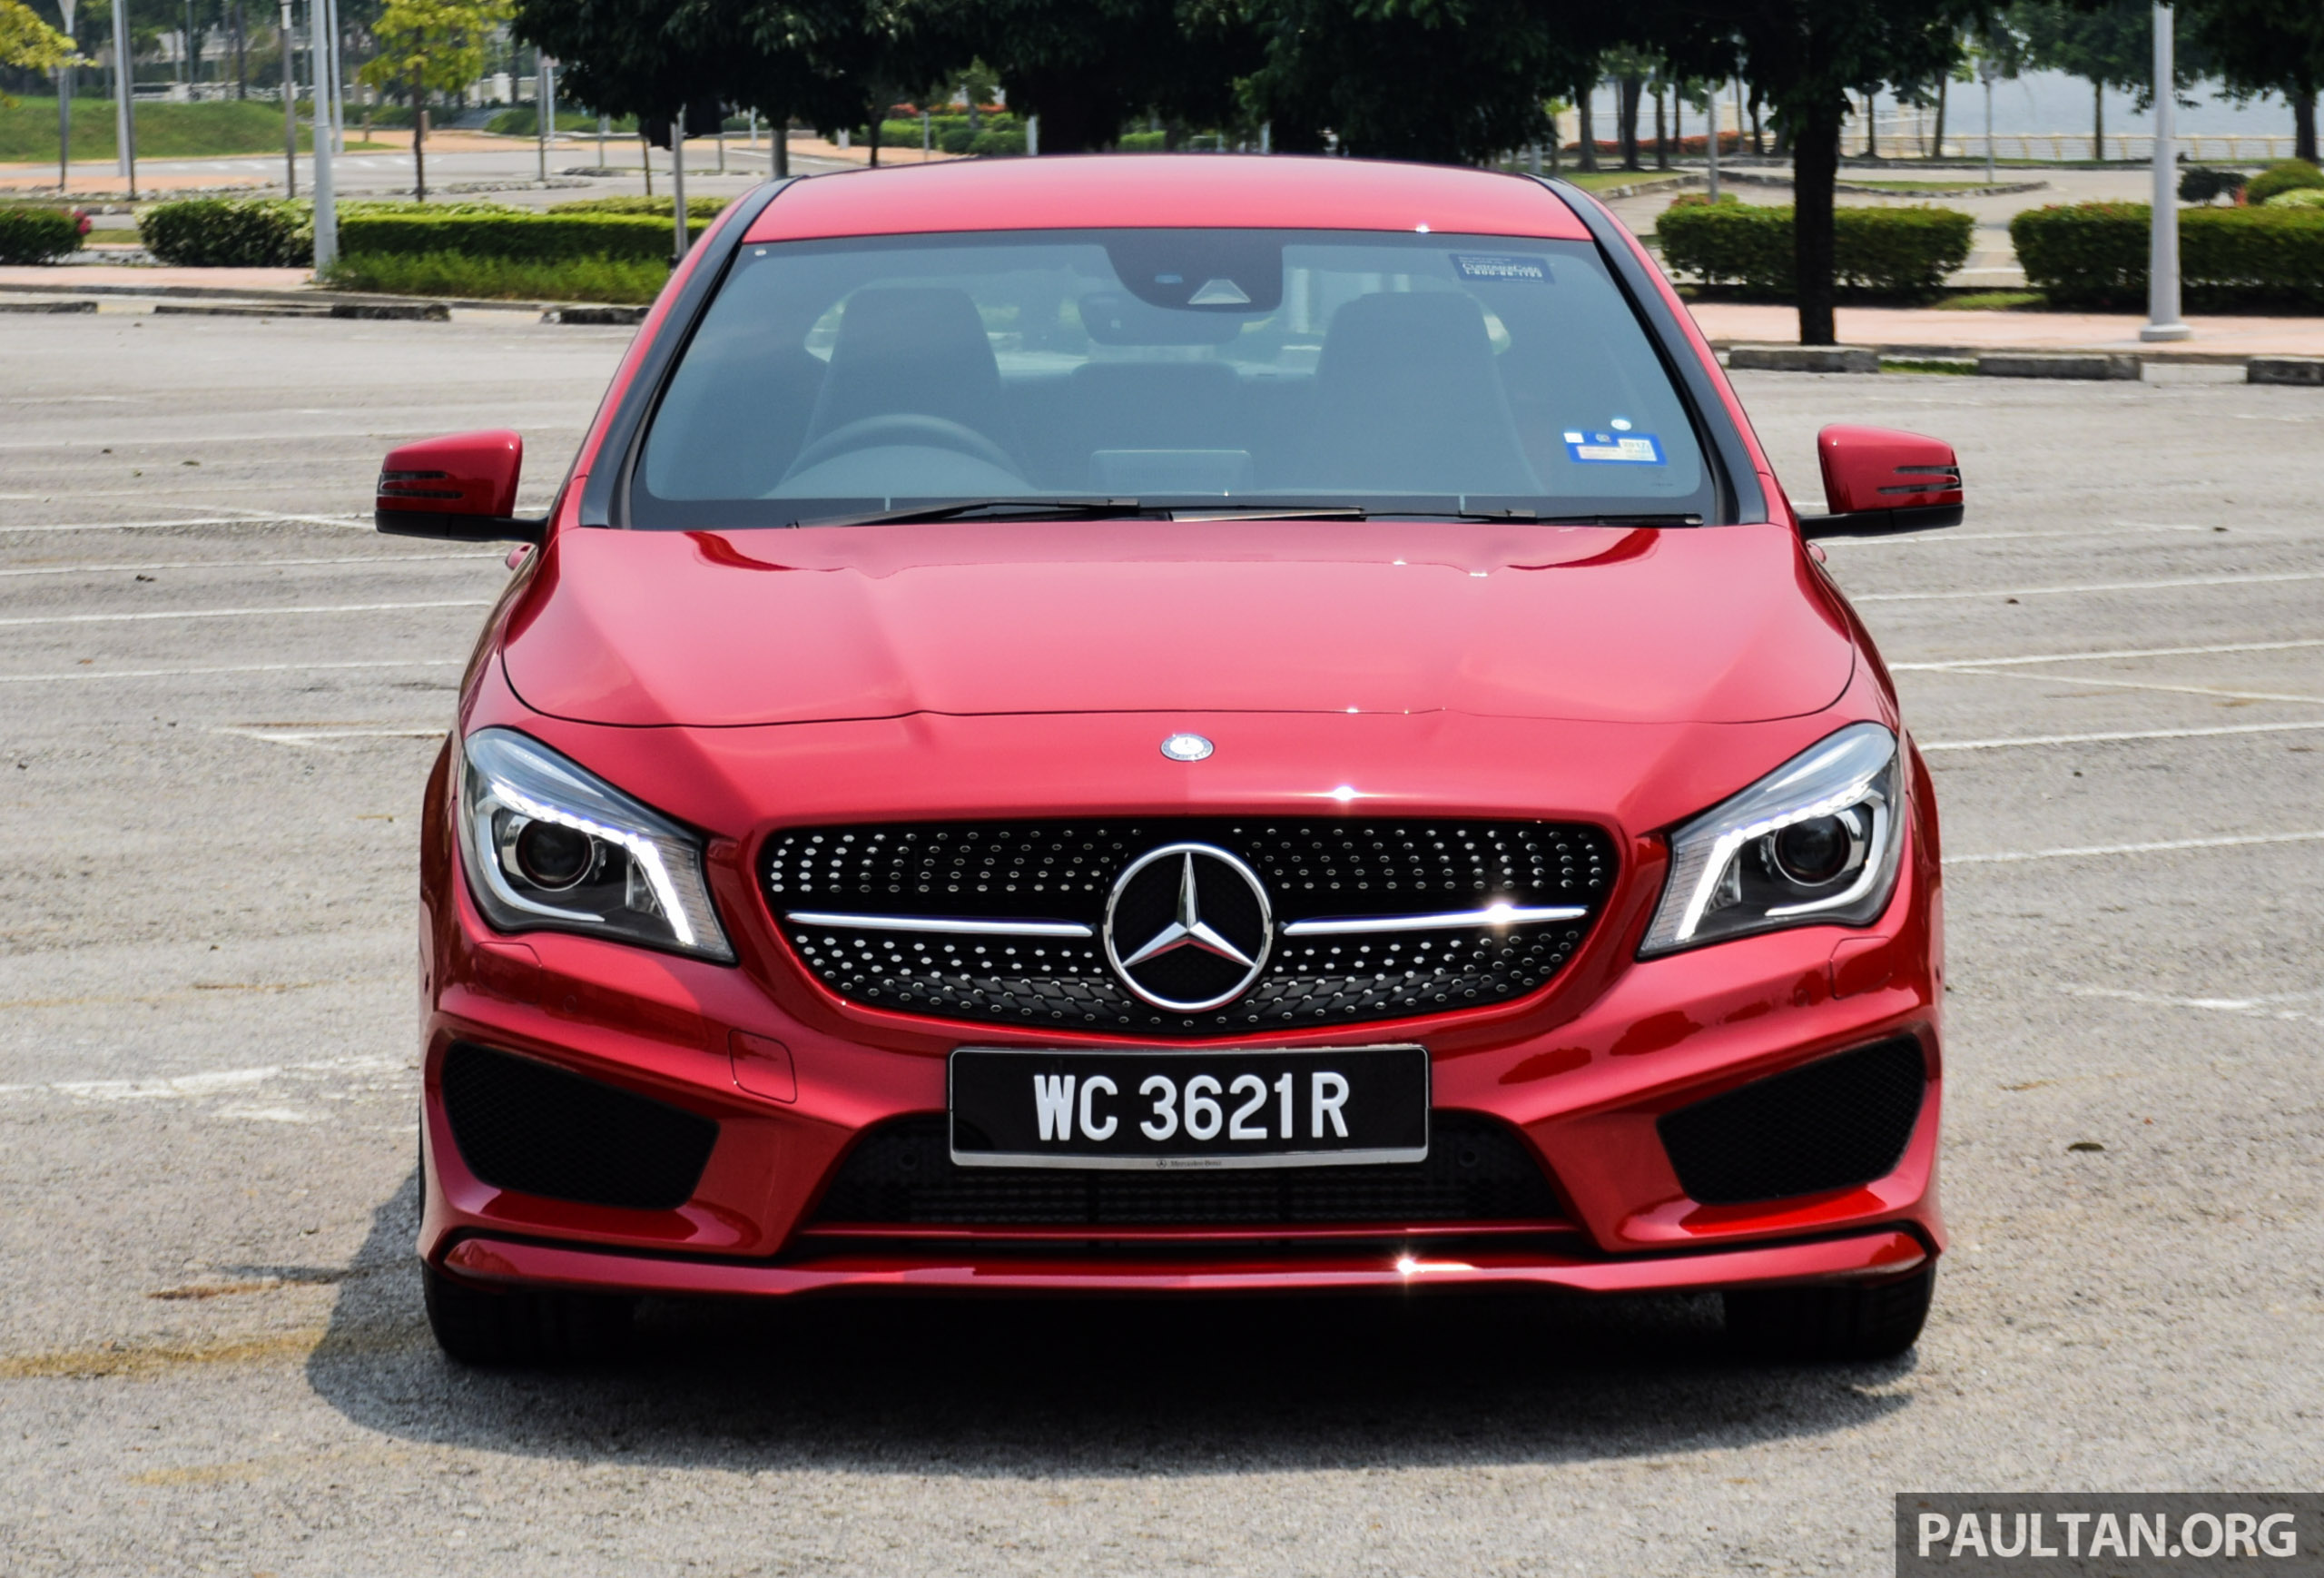 Driven mercedes benz cla250 4matic just right image 493165 for Mercedes benz cla250 4matic